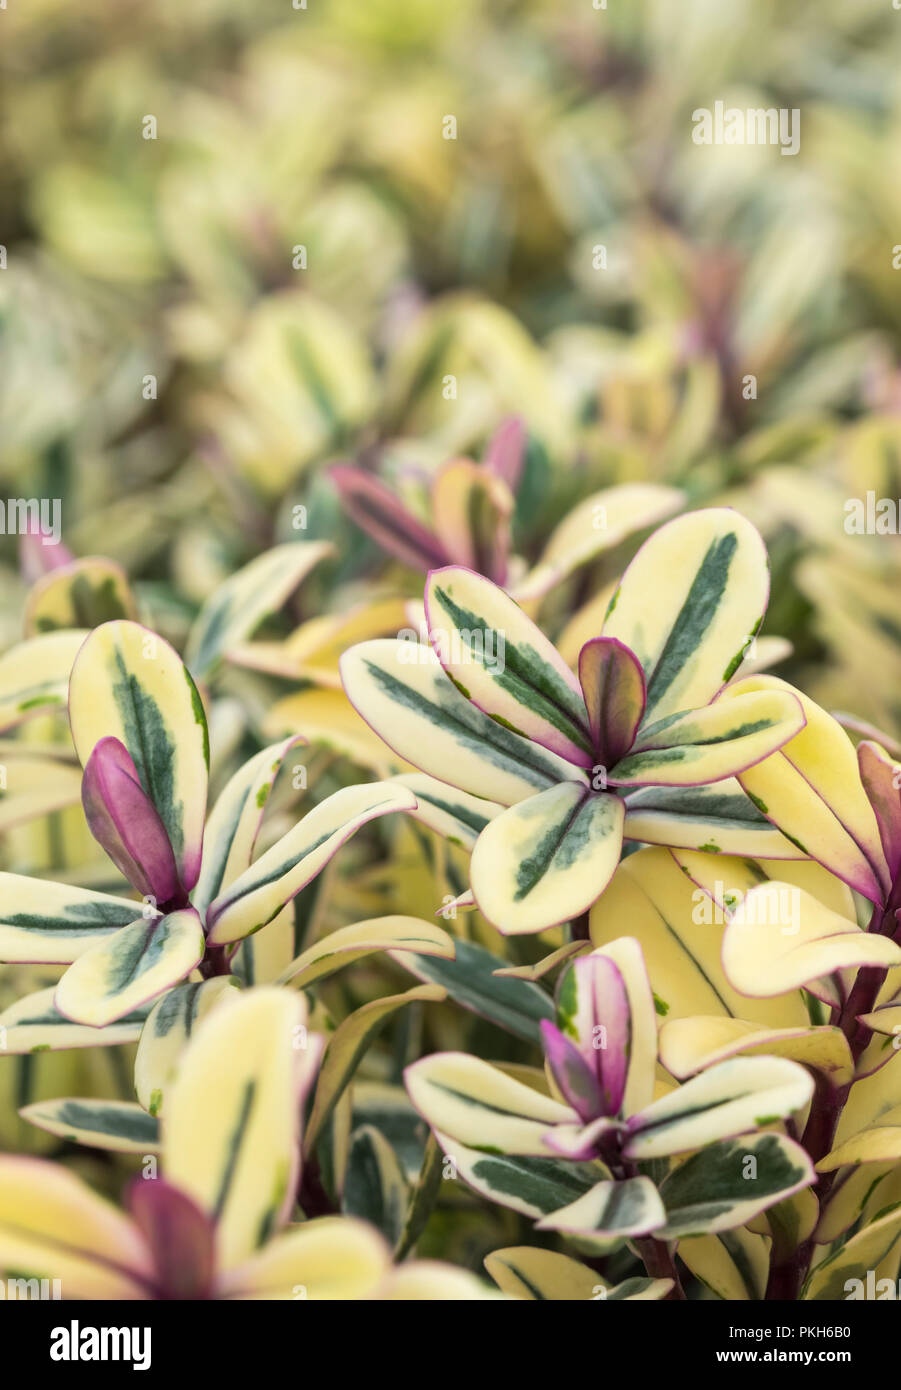 Hebe franciscana 'Tricolour' ('Tricolor'), an evergreen shrubby hebe plant in early Autumn in West Sussex, England, UK. - Stock Image